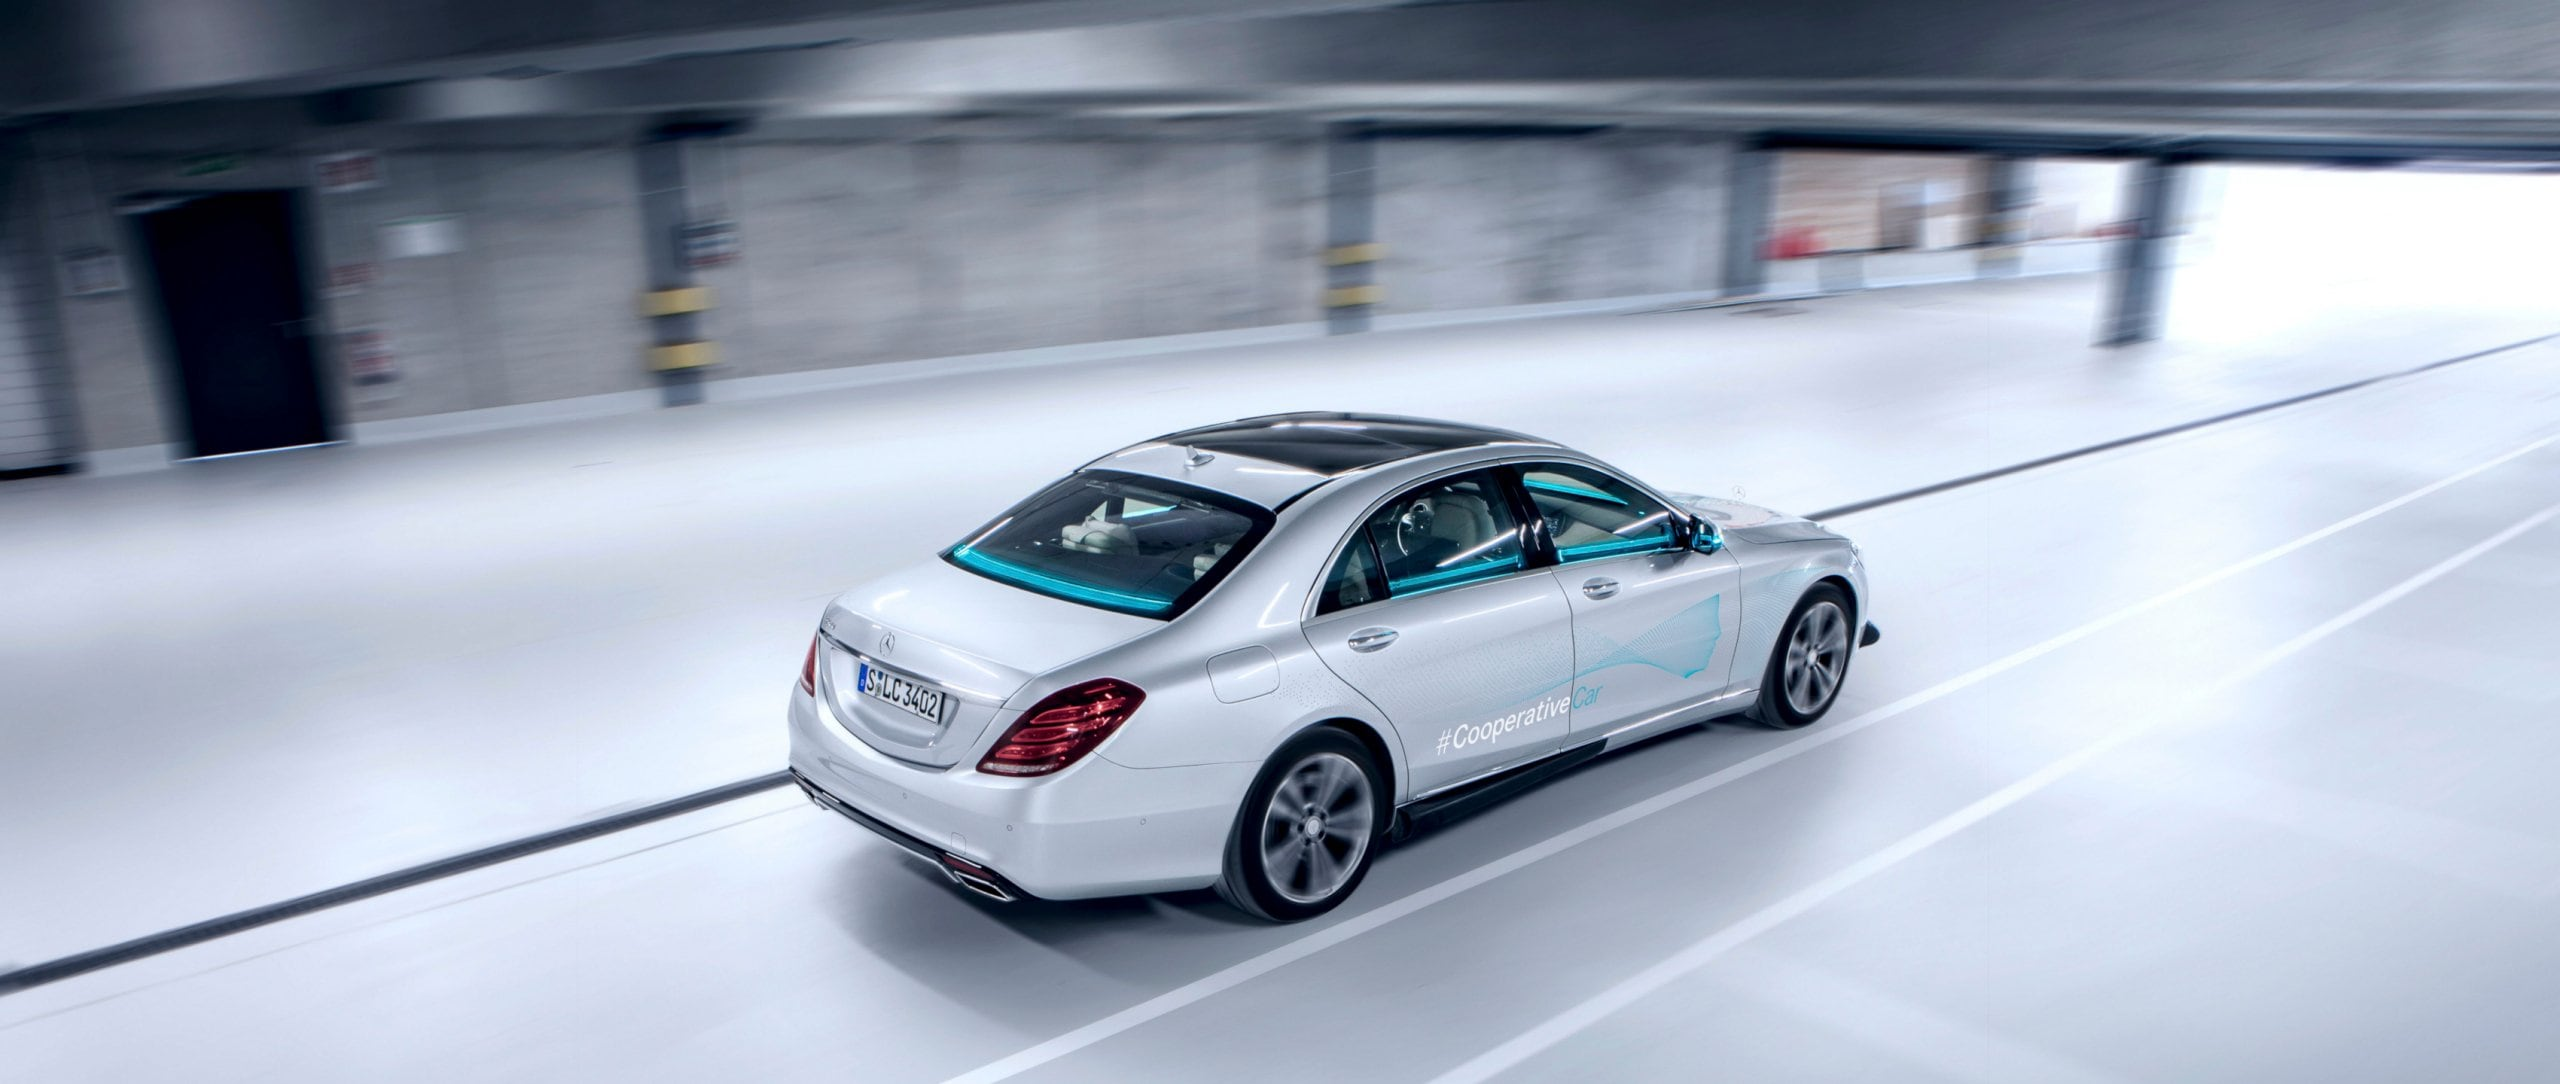 The cooperative vehicle based on a Mercedes-Benz S-Class has 360-degree light signalling.